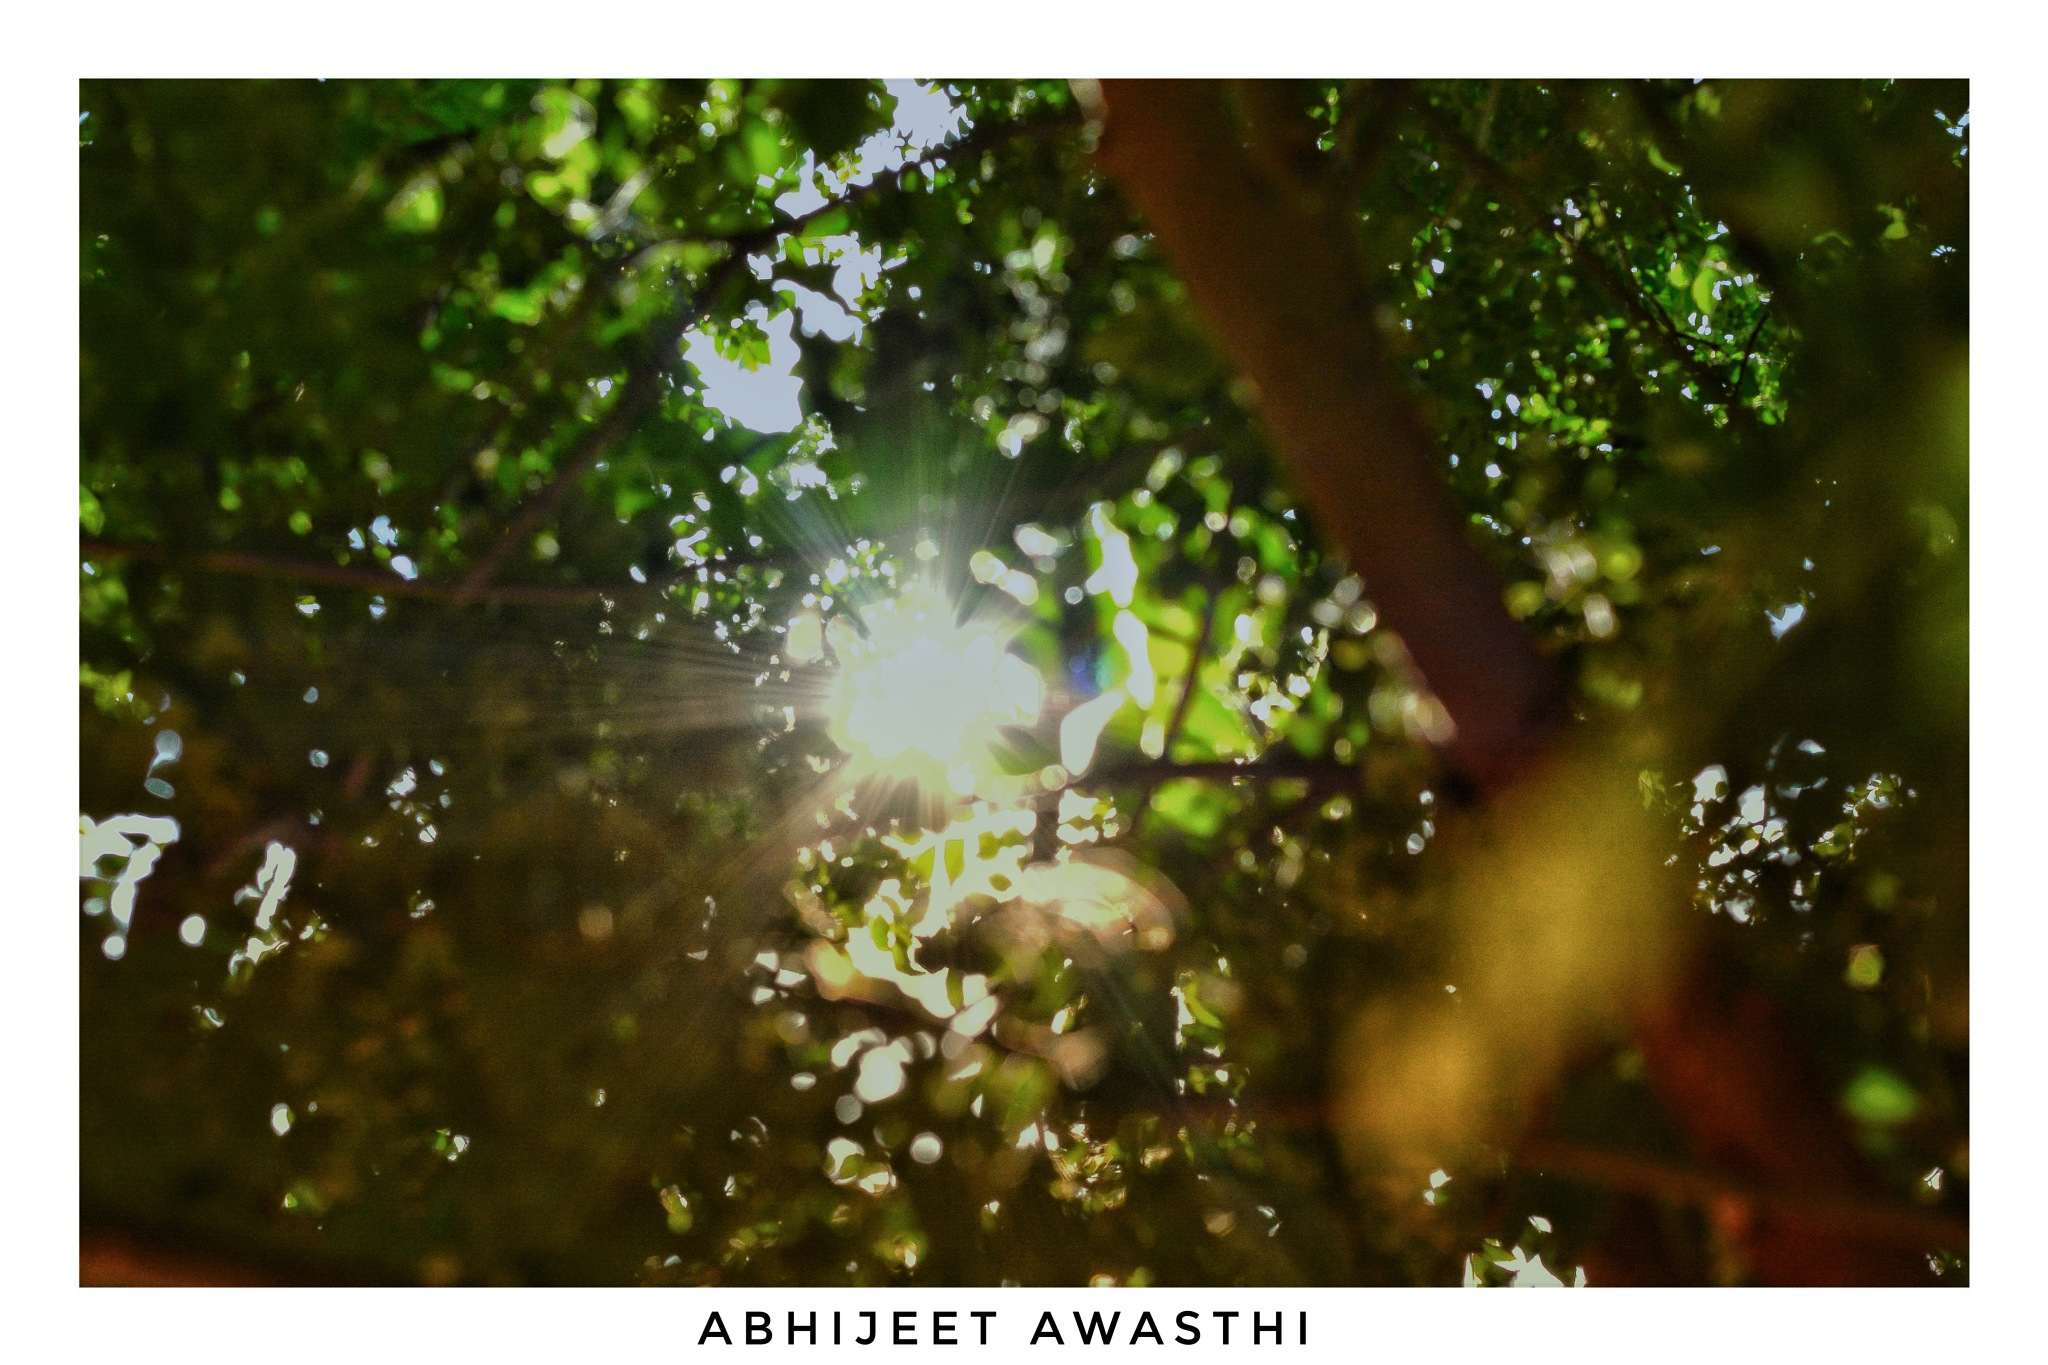 Untitled by Abhijeet Awasthi